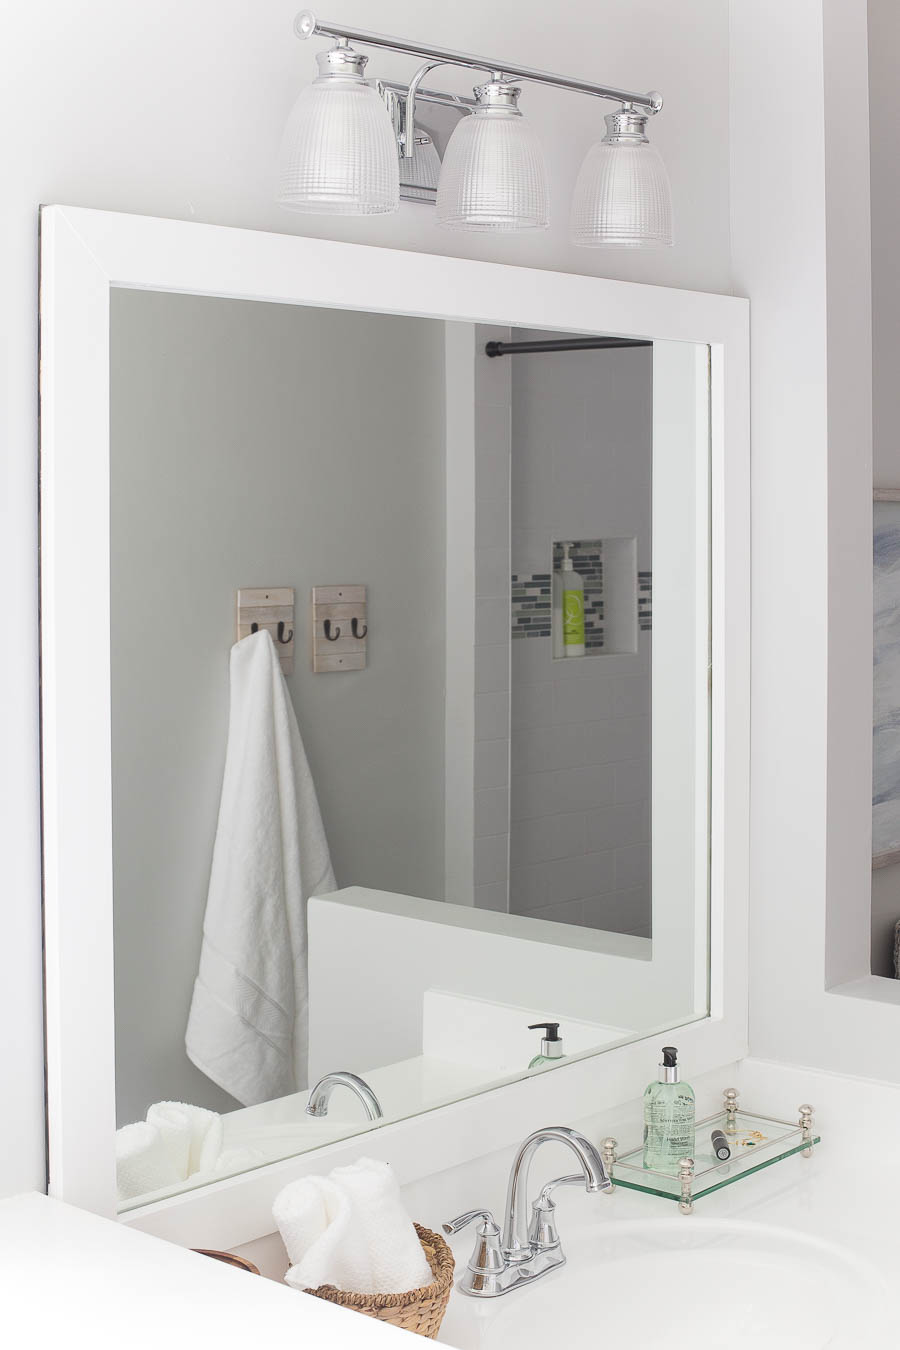 bathroom mirror ideas diy how to frame a bathroom mirror easy diy project 15970